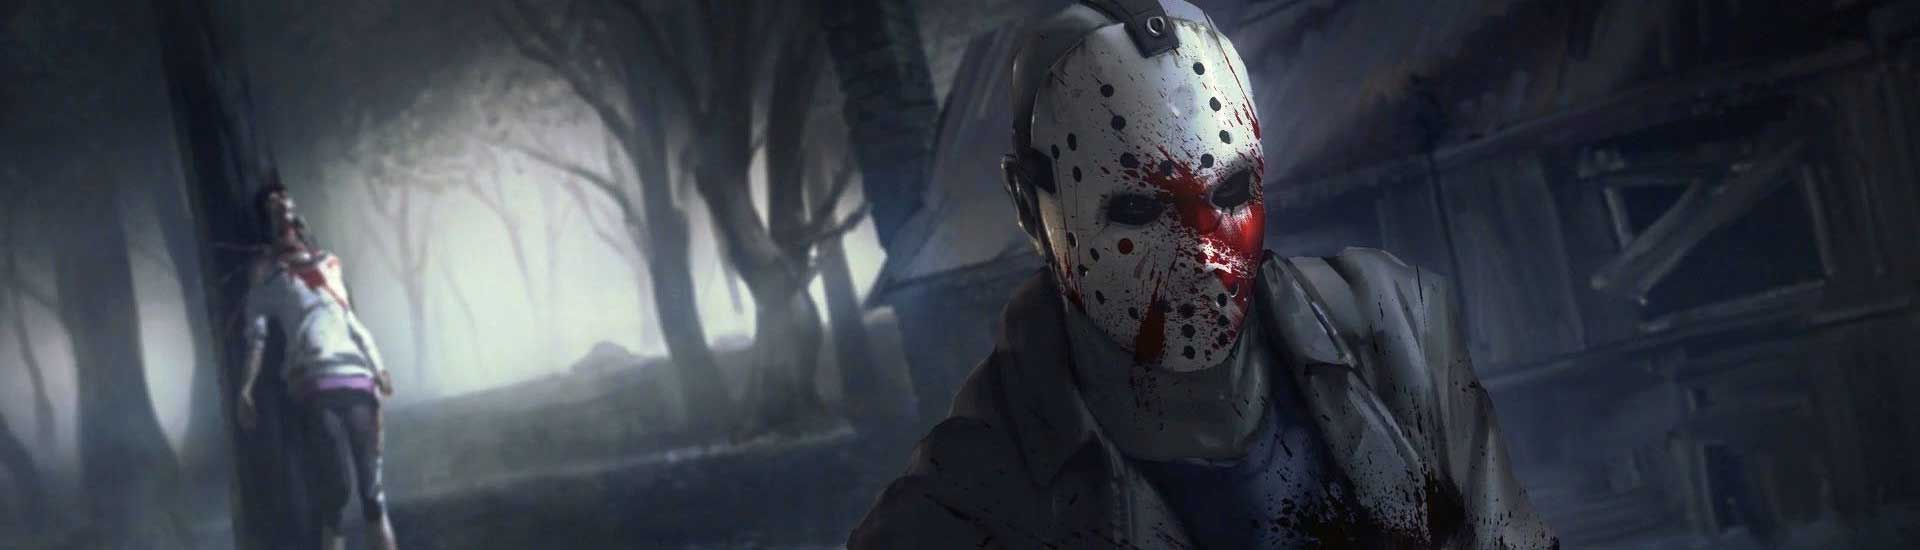 friday the 13th subtitles subscene